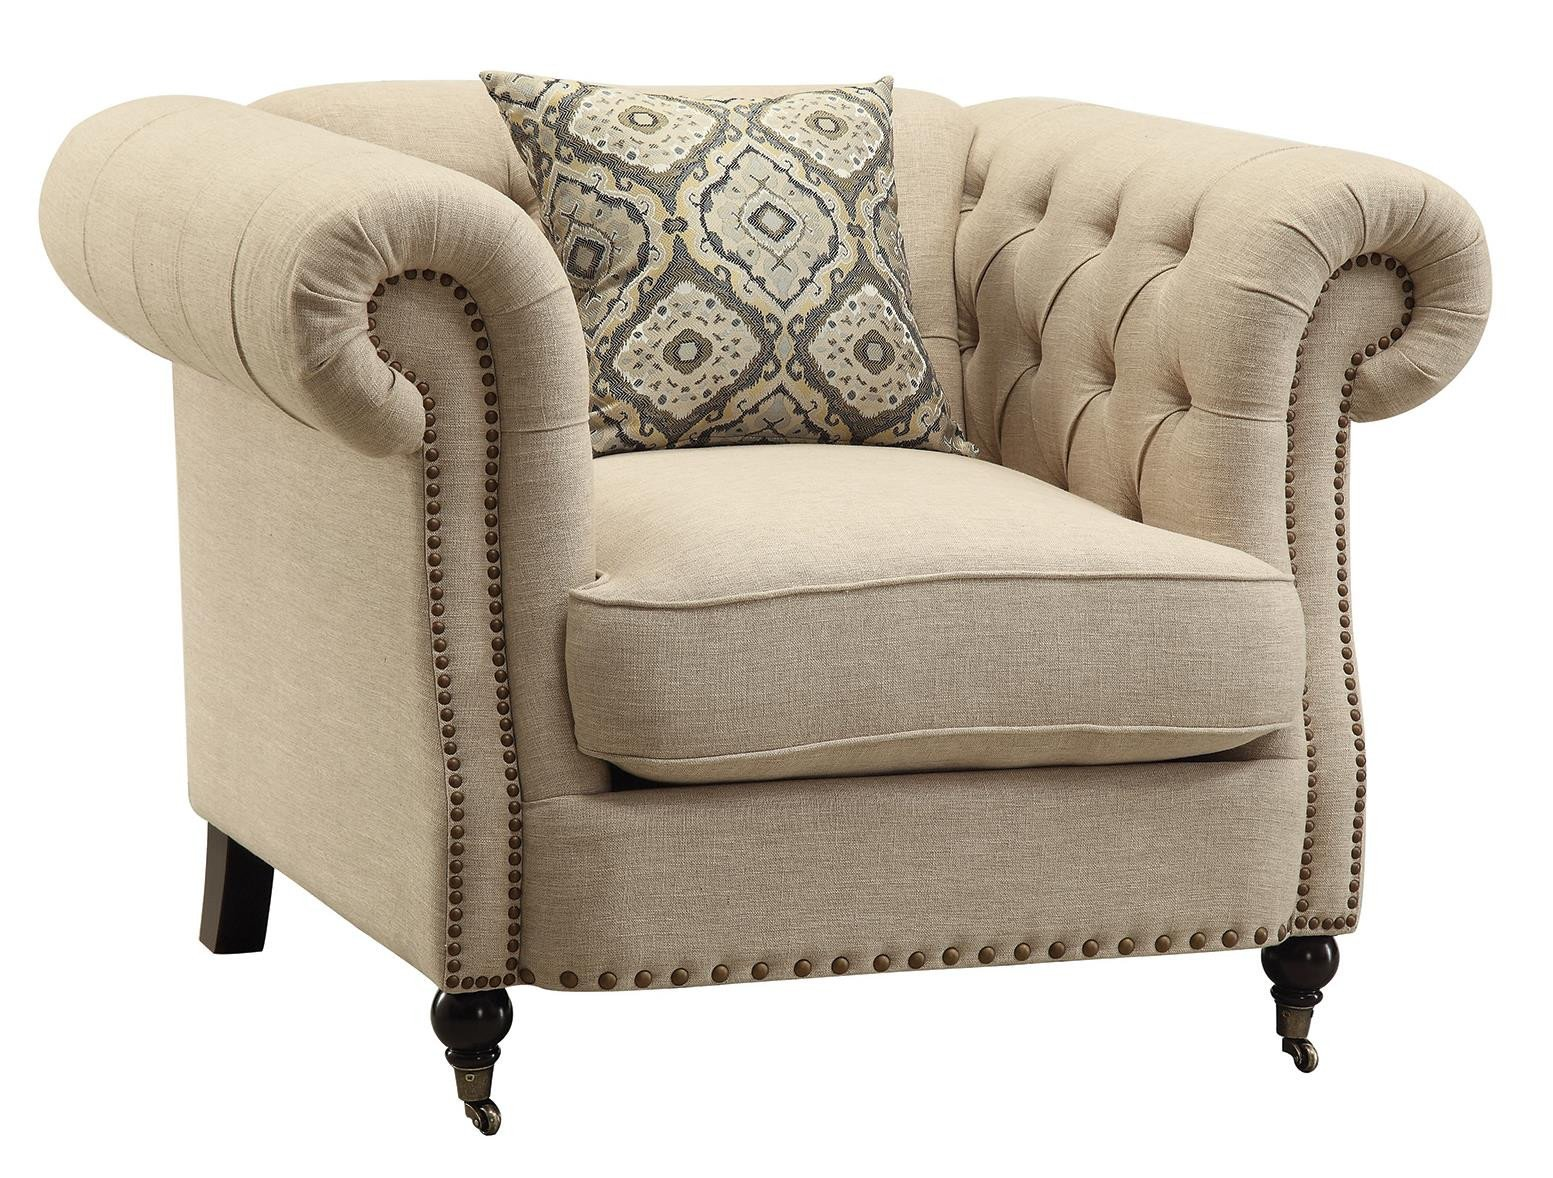 Traditional Living Room Upholstered Chairs Lovely Coaster Trivellato Traditional button Tufted Chair with Rolled Arms and Nailheads